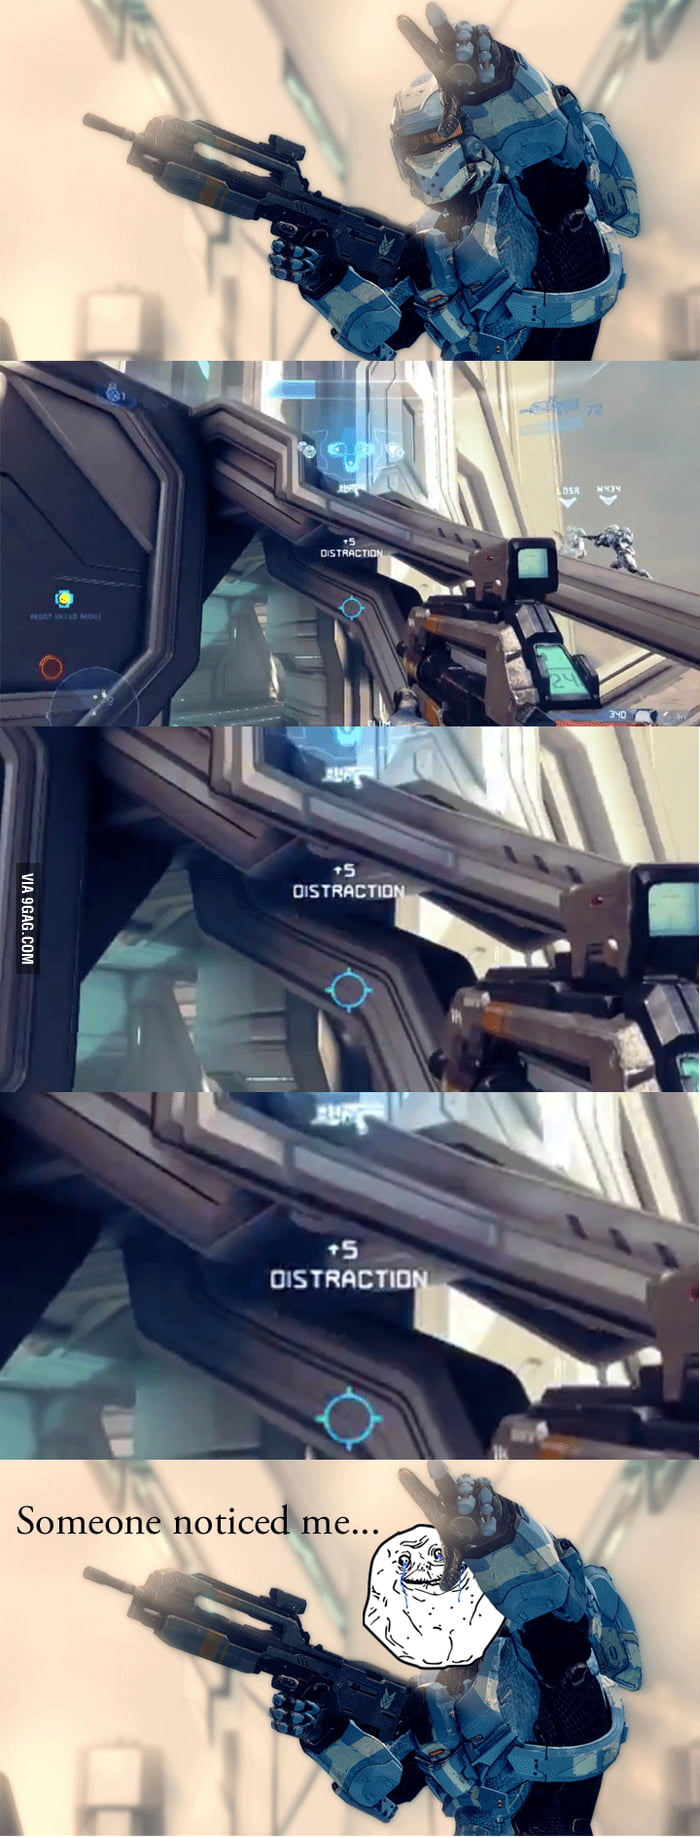 Halo: My thoughts every time.